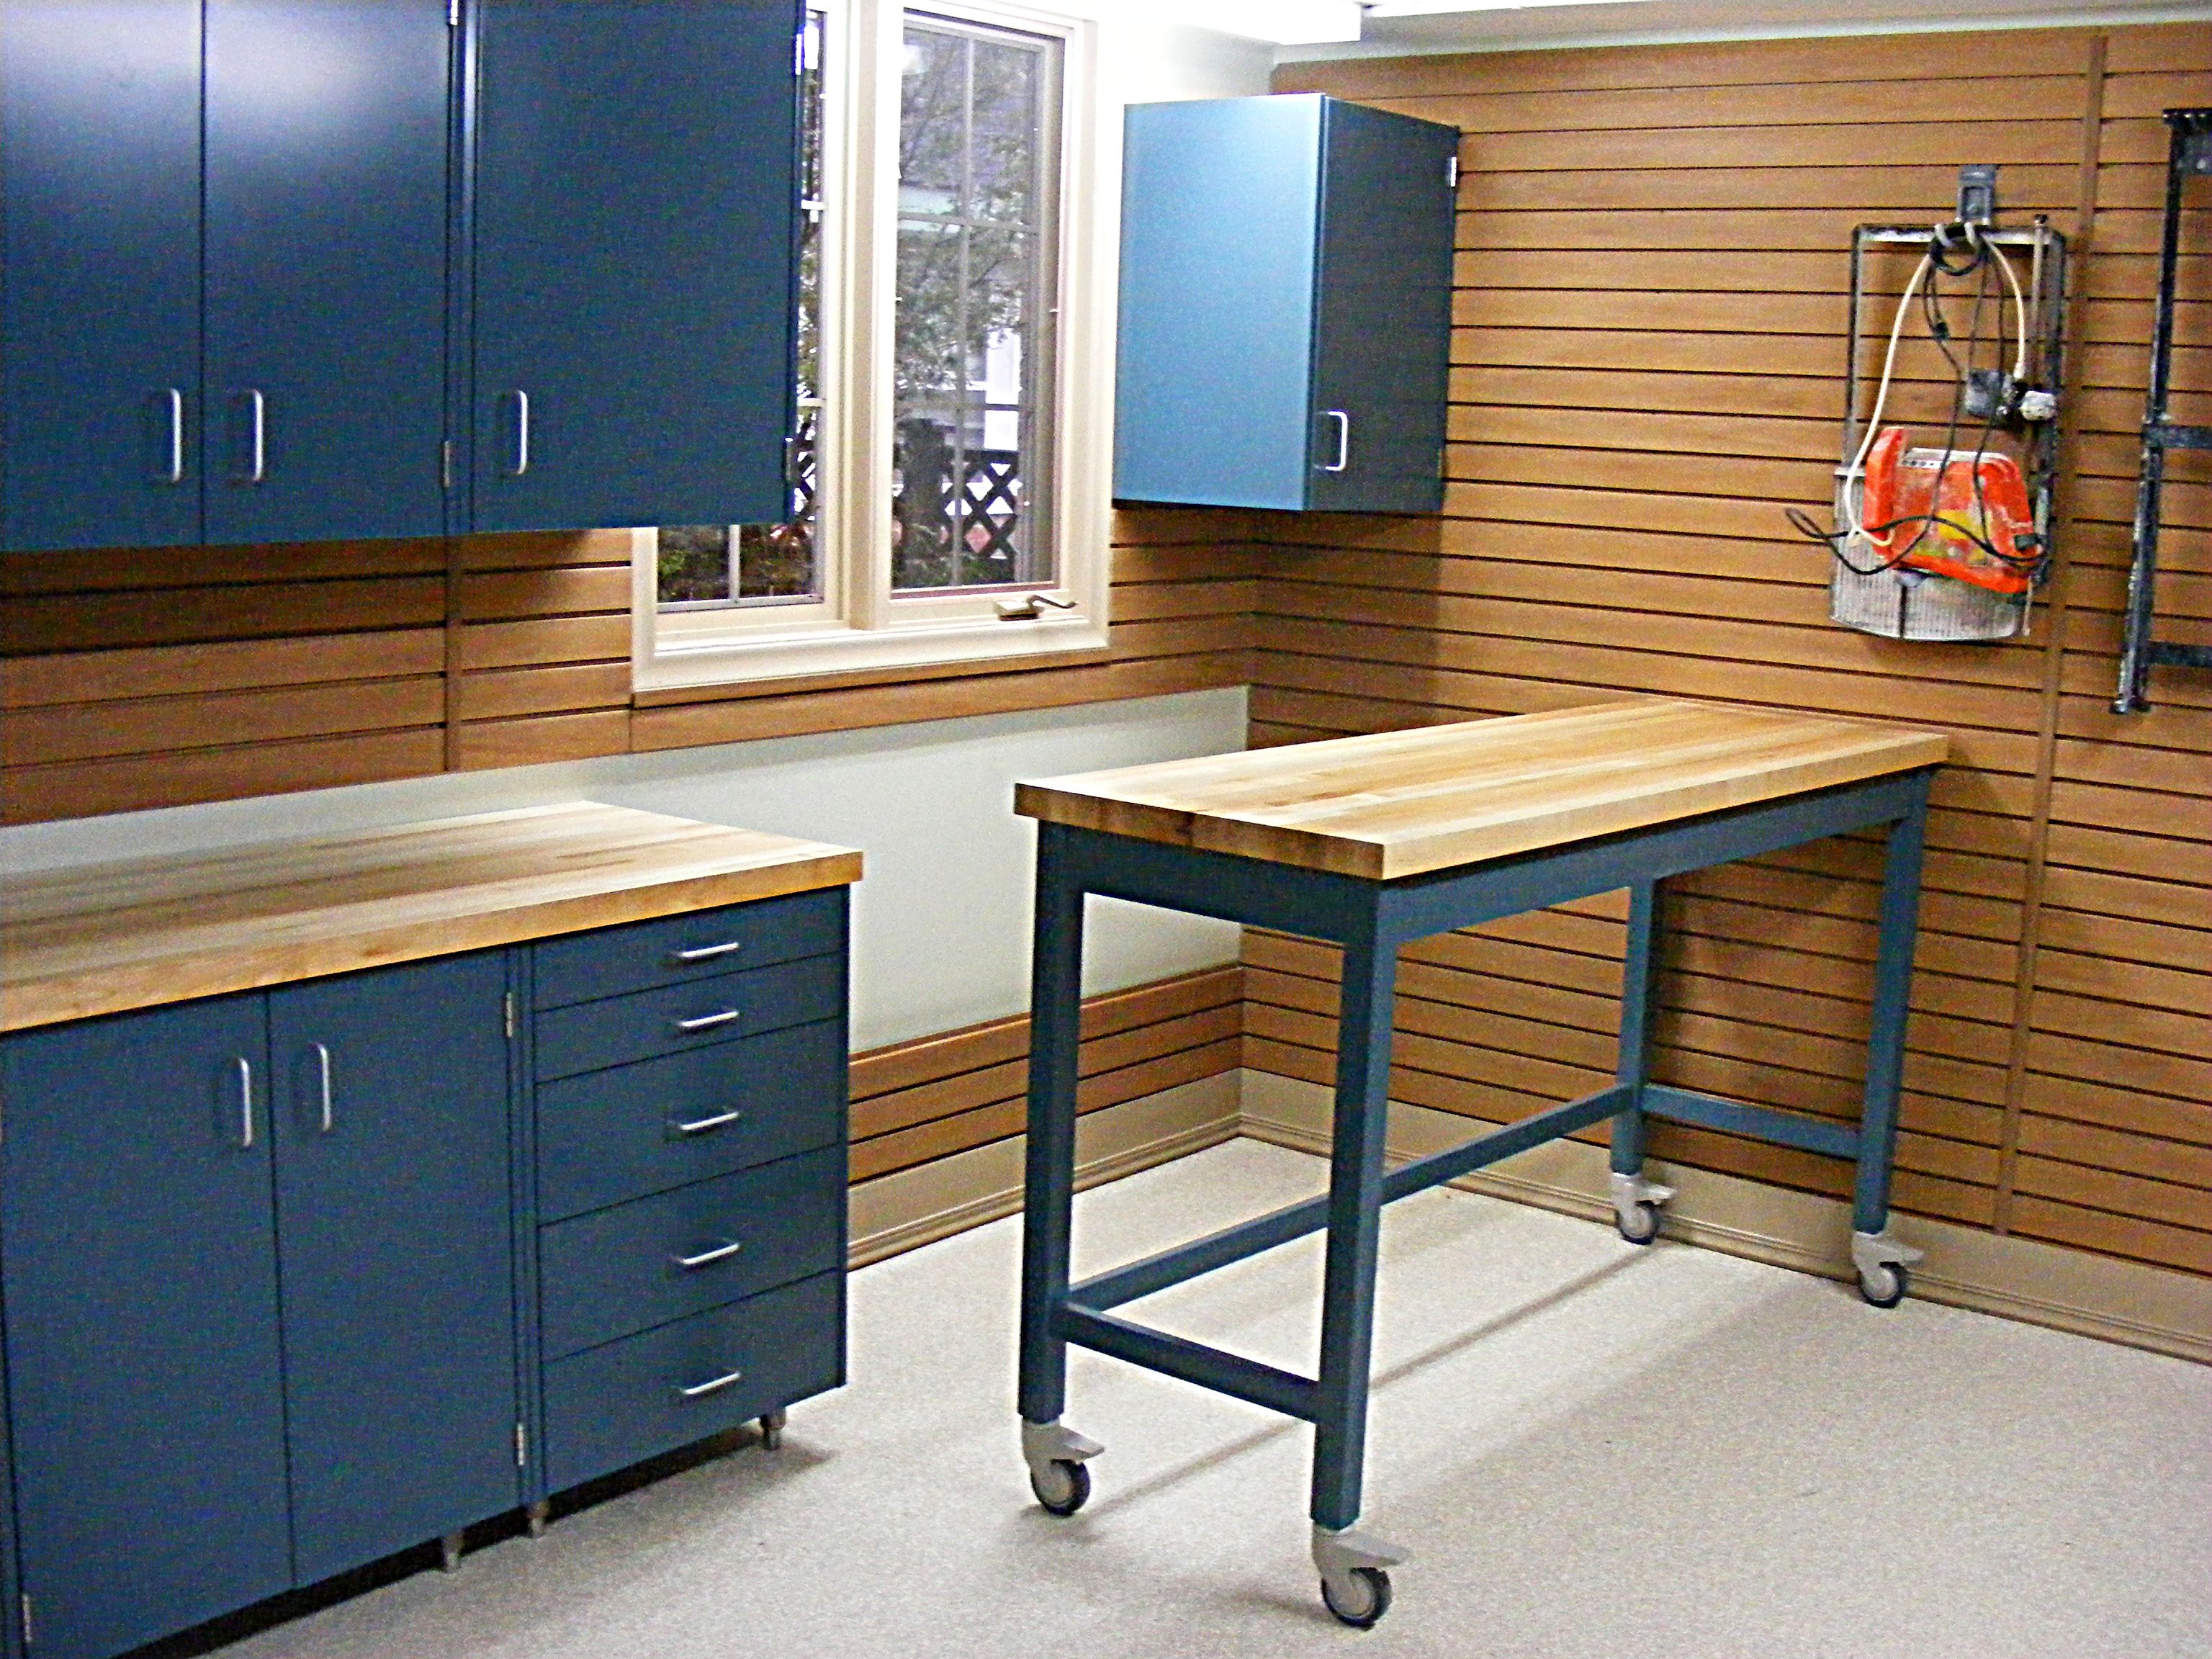 Garage Blue Color Of Garage Shelves Made From Metal Cabinets Rolling Workbench Workstation